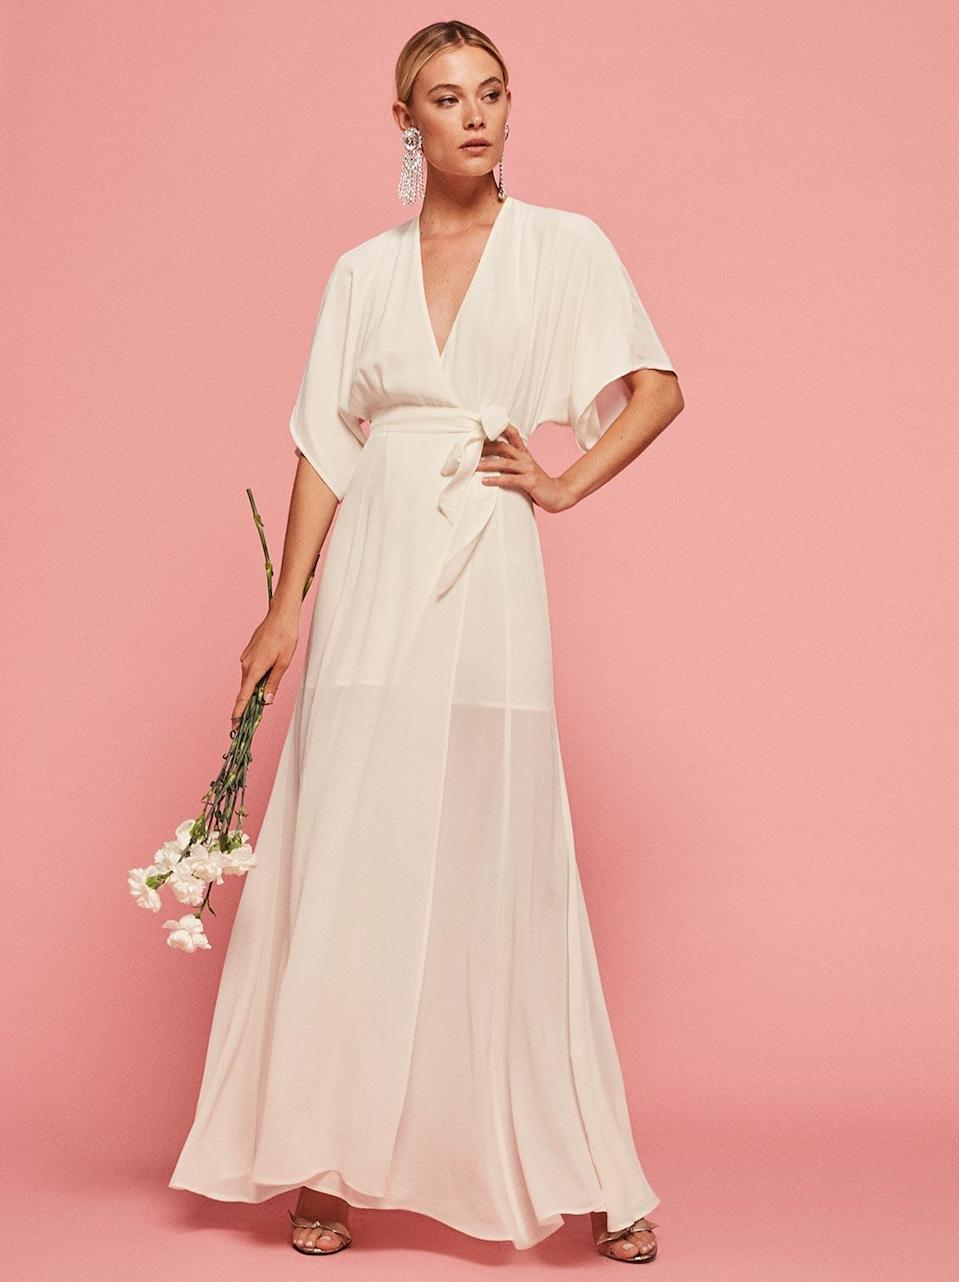 "<p>The Winslow Dress, $268, <a href=""https://www.thereformation.com/products/winslow-dress-ivory"" rel=""nofollow noopener"" target=""_blank"" data-ylk=""slk:thereformation.com"" class=""link rapid-noclick-resp"">thereformation.com</a> </p>"